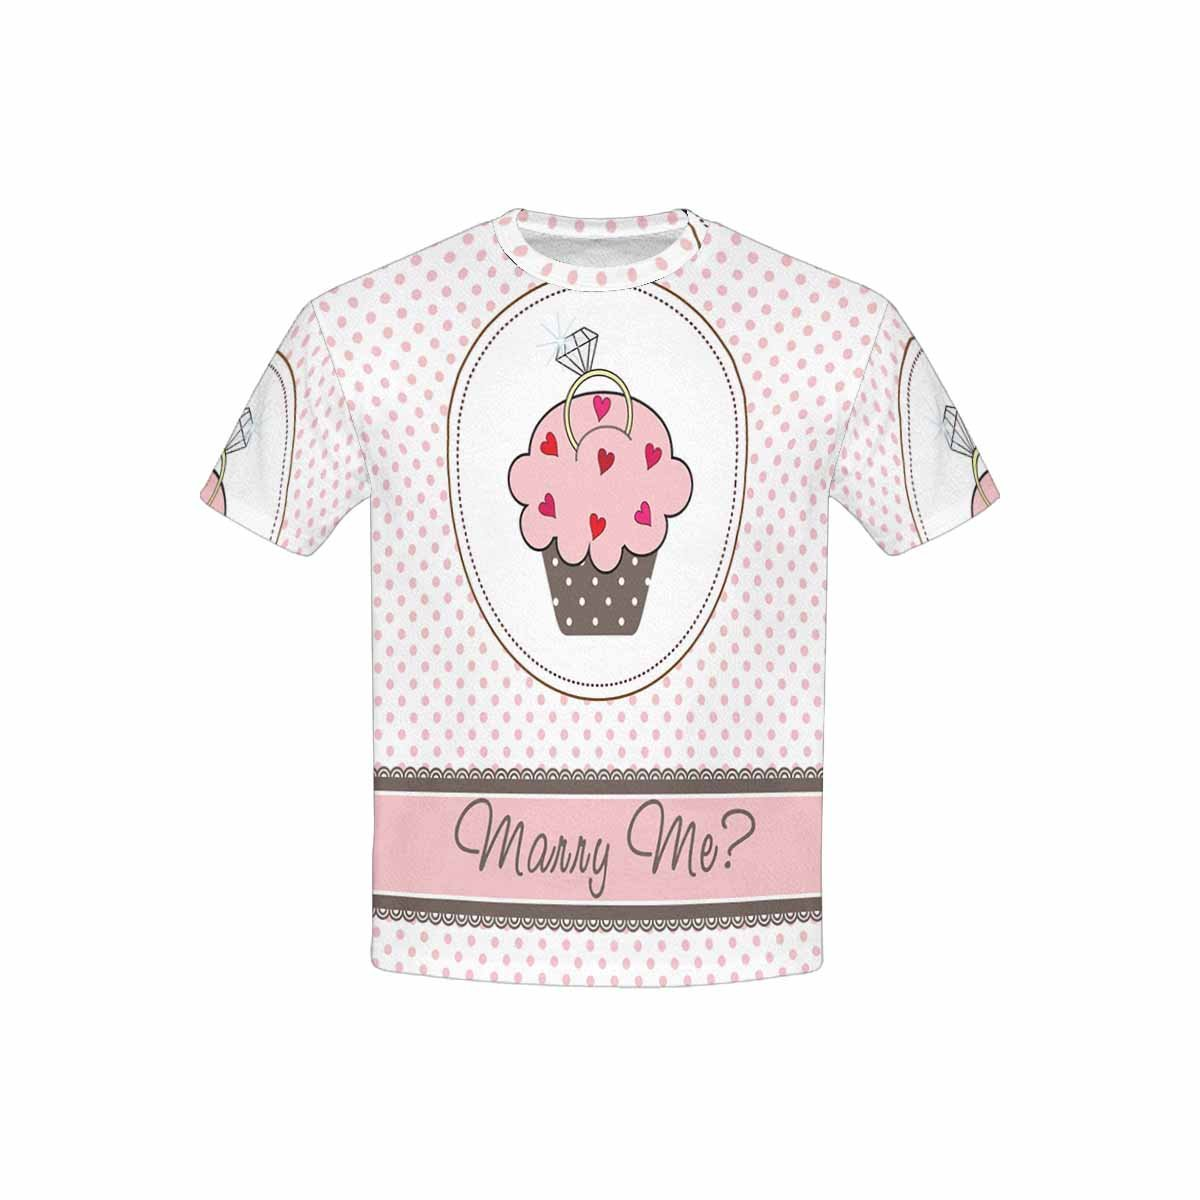 InterestPrint T-Shirt in Youth Wedding Cupcake with a Ring XL